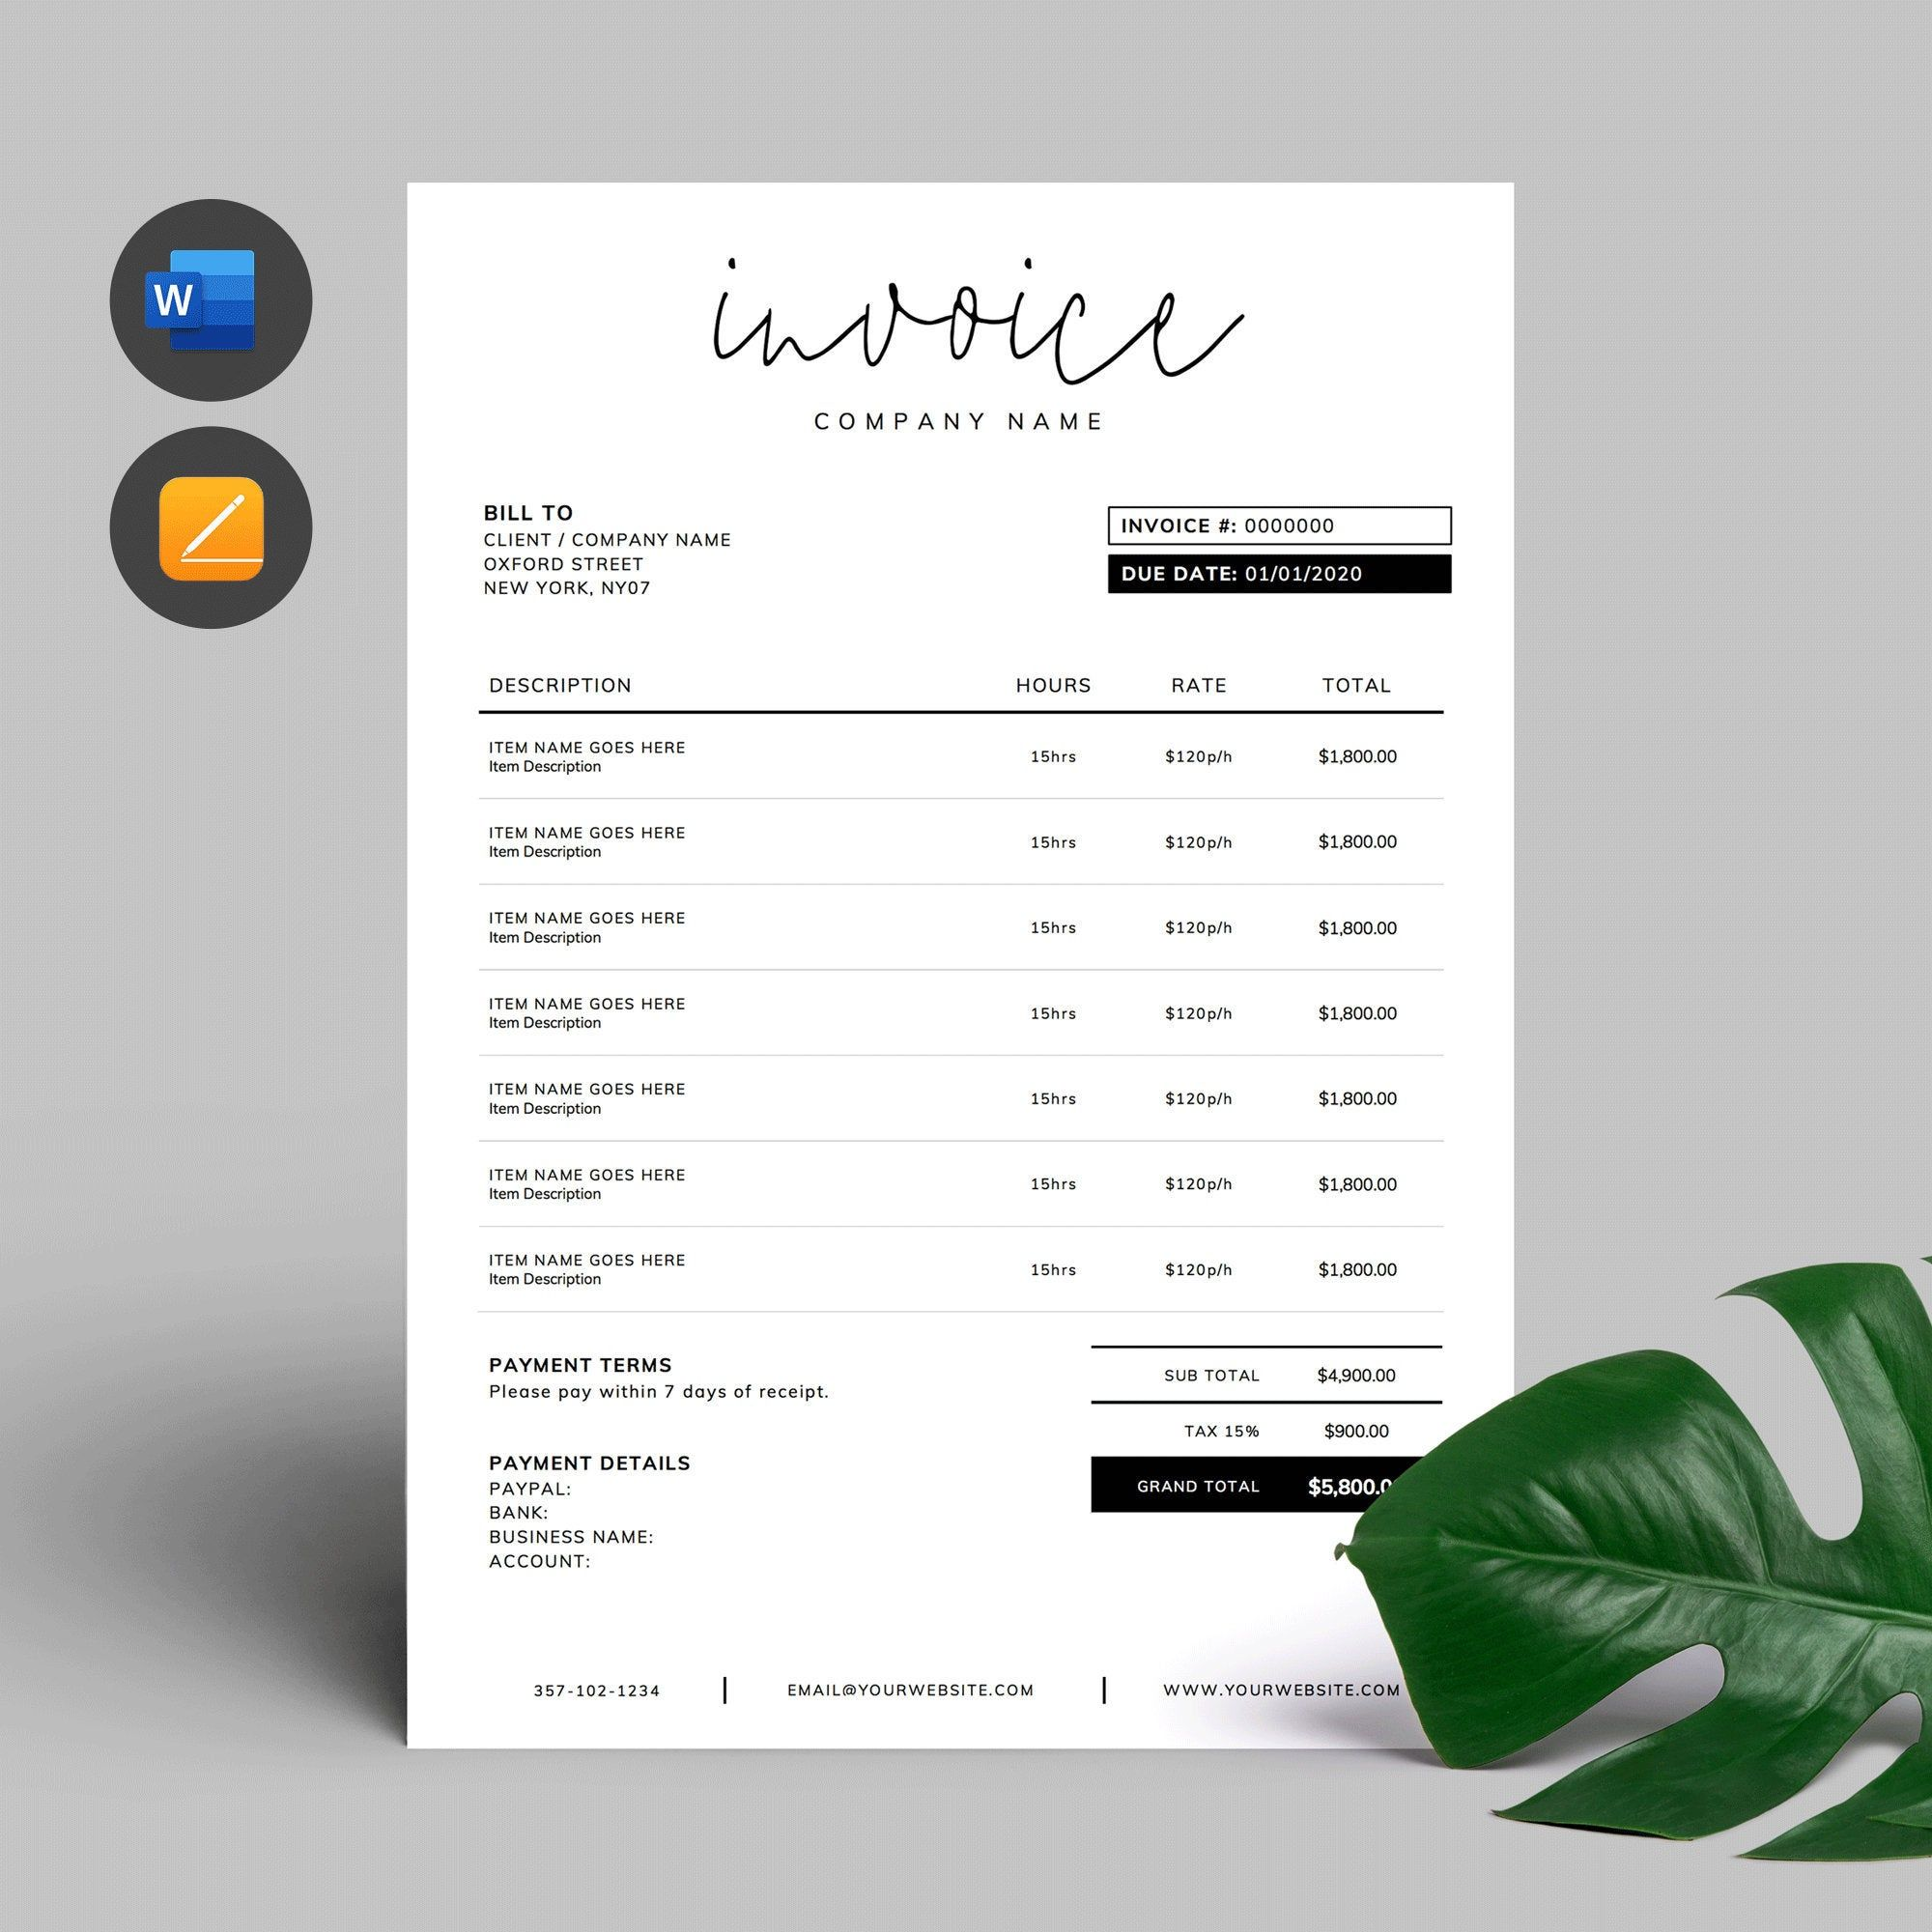 Printable Invoice Template Word Editable Invoice Custom Order Form Photography Invoic Photography Invoice Template Invoice Template Word Invoice Template